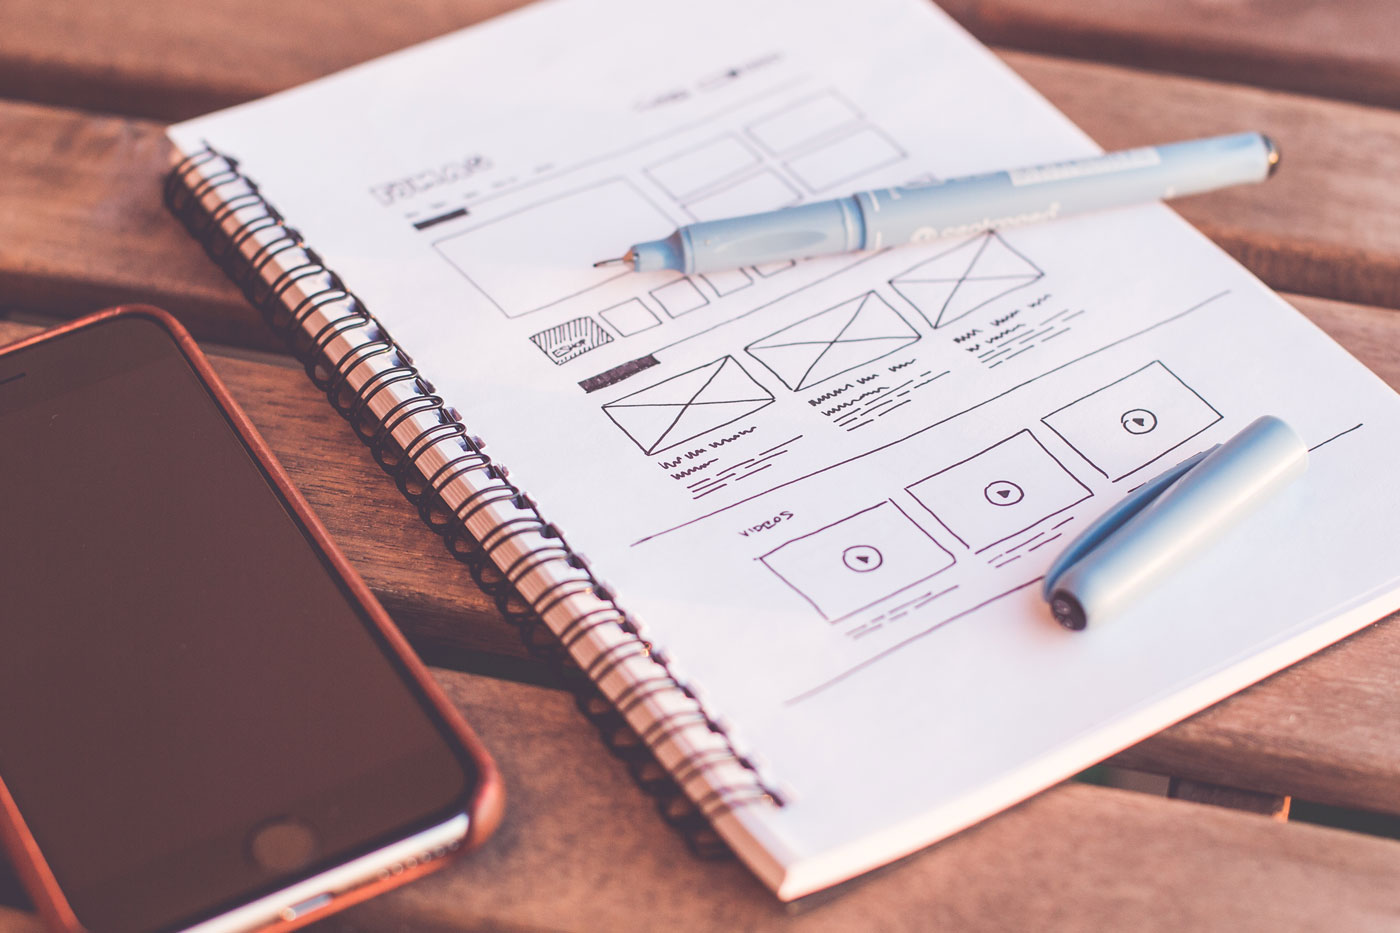 7 Tips to Make Your Web Design Look More Modern